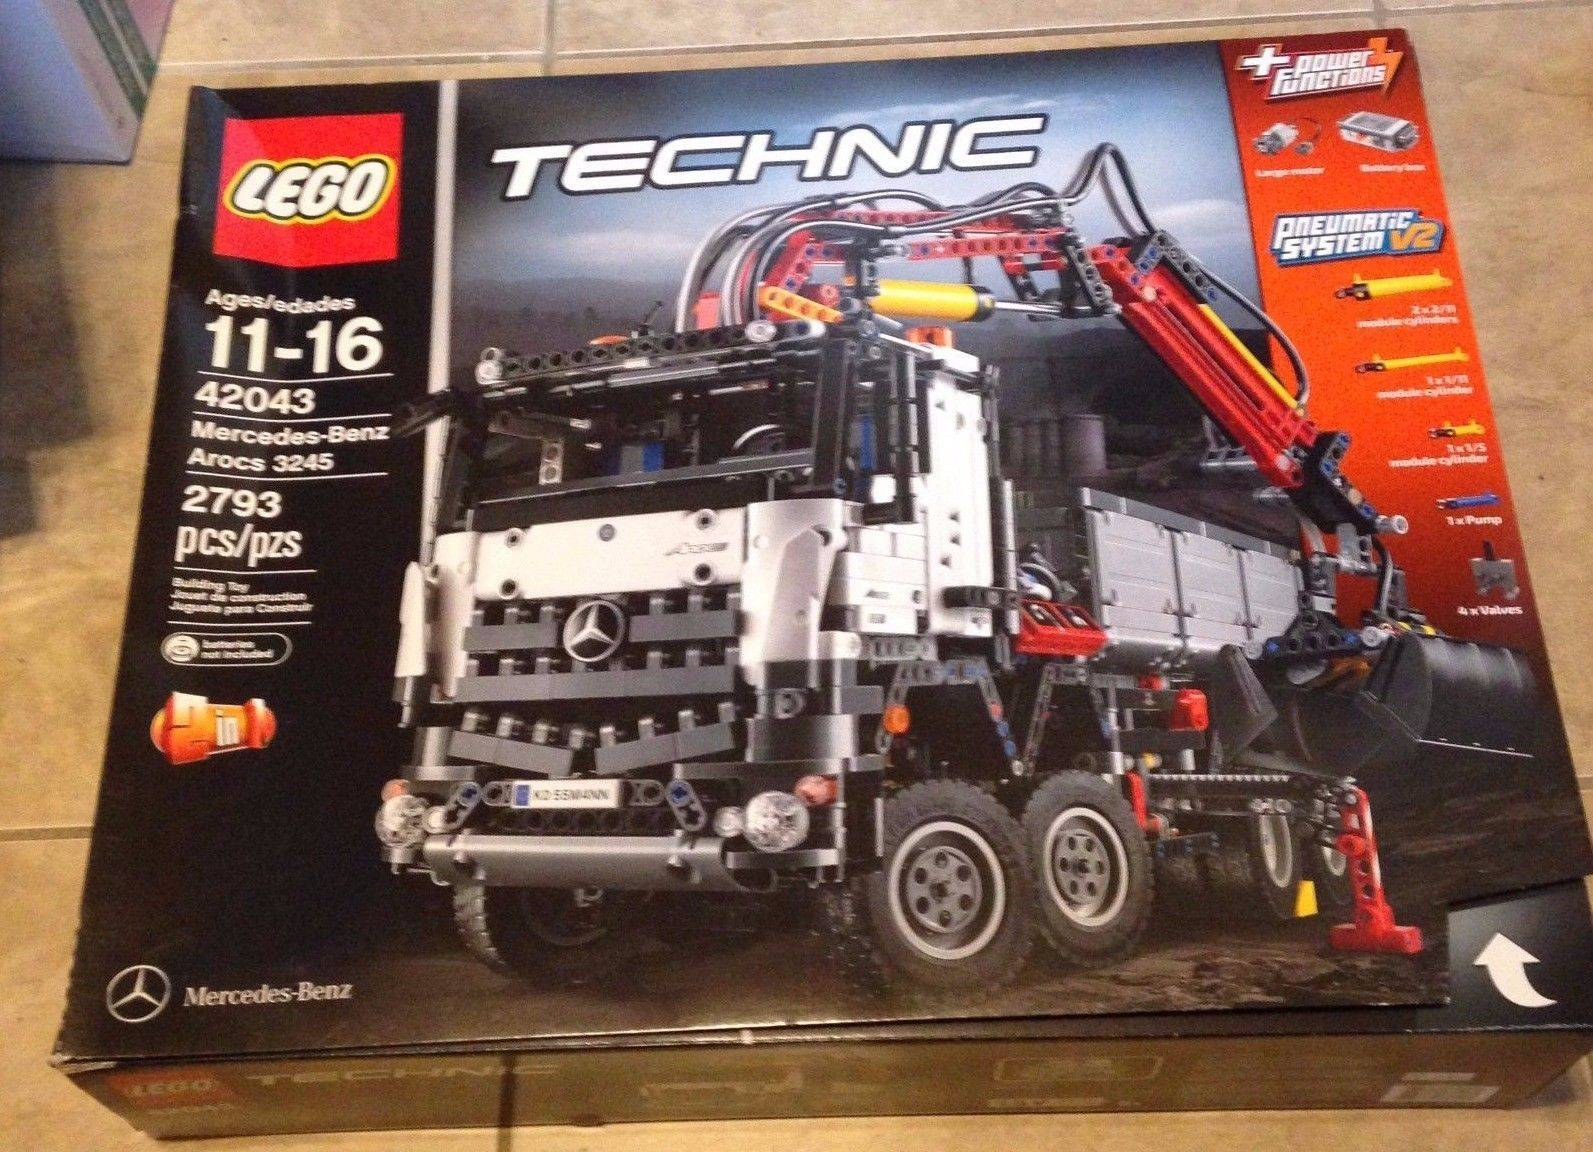 Lego 42043 Technic Mercedes-Benz Arocs 3245 Set